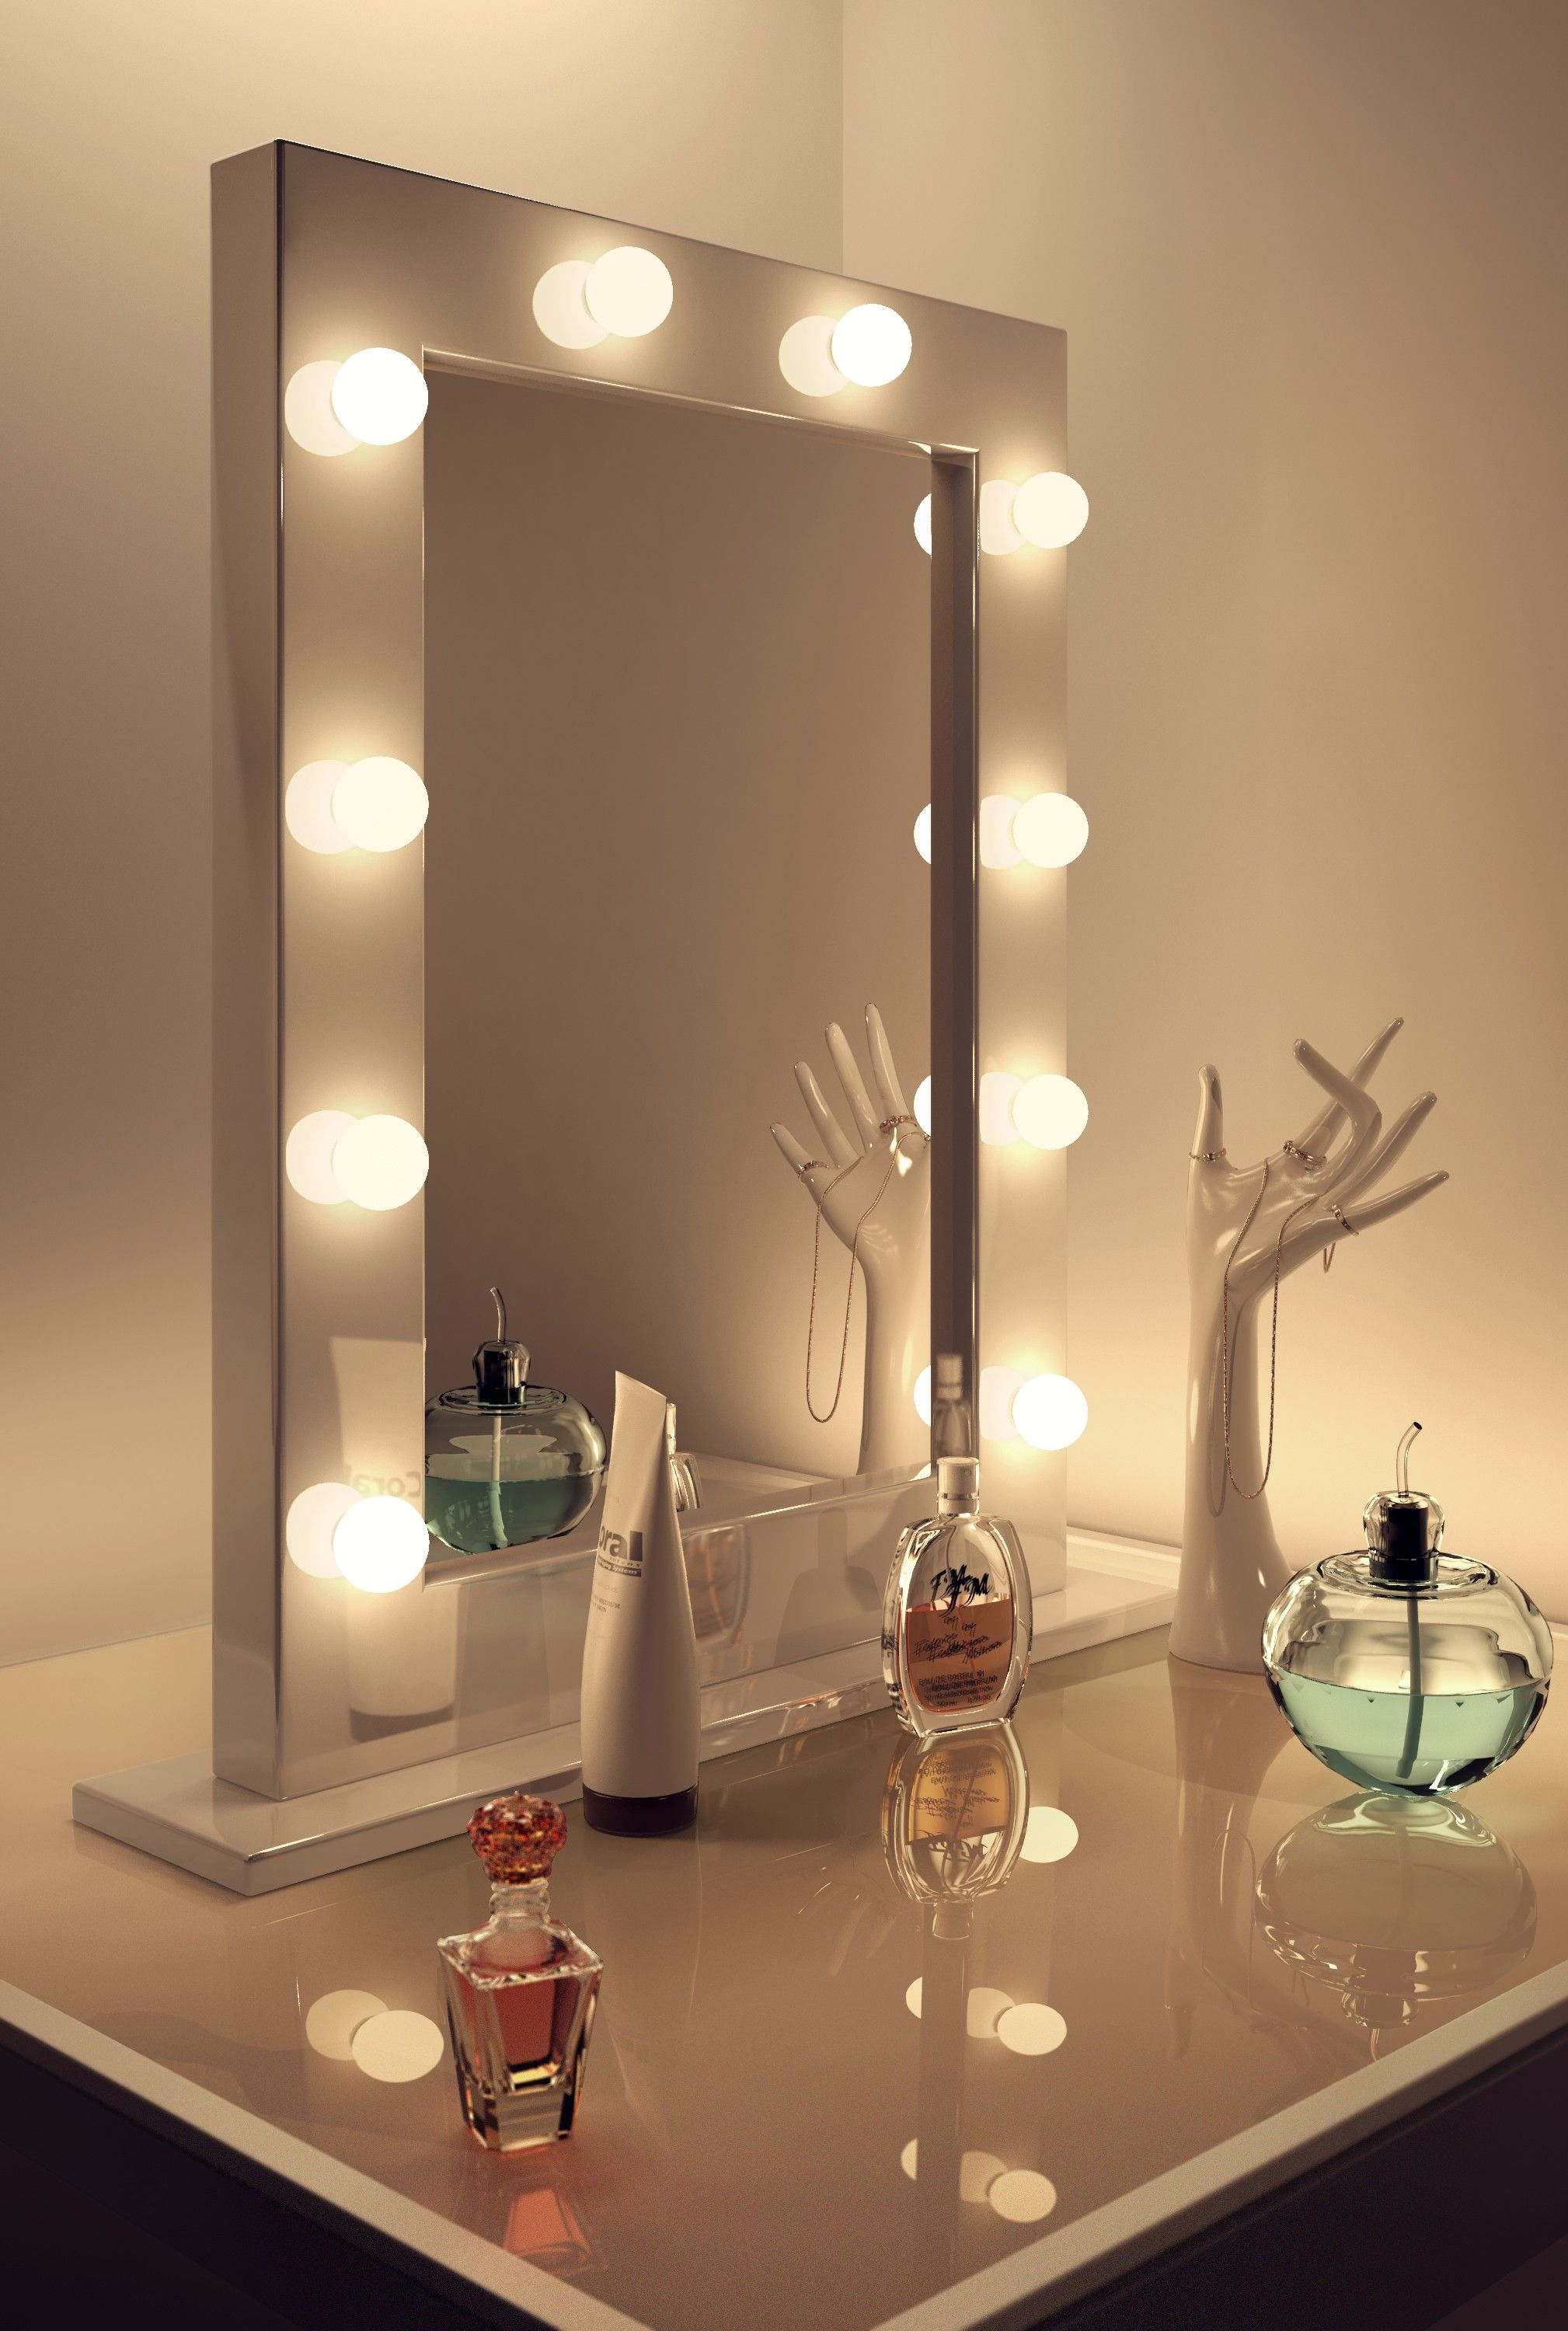 GlamourousLightHollywoodMirrorLightLedHairSalonMakeUp -  fort lauderdale bathroom mirror light